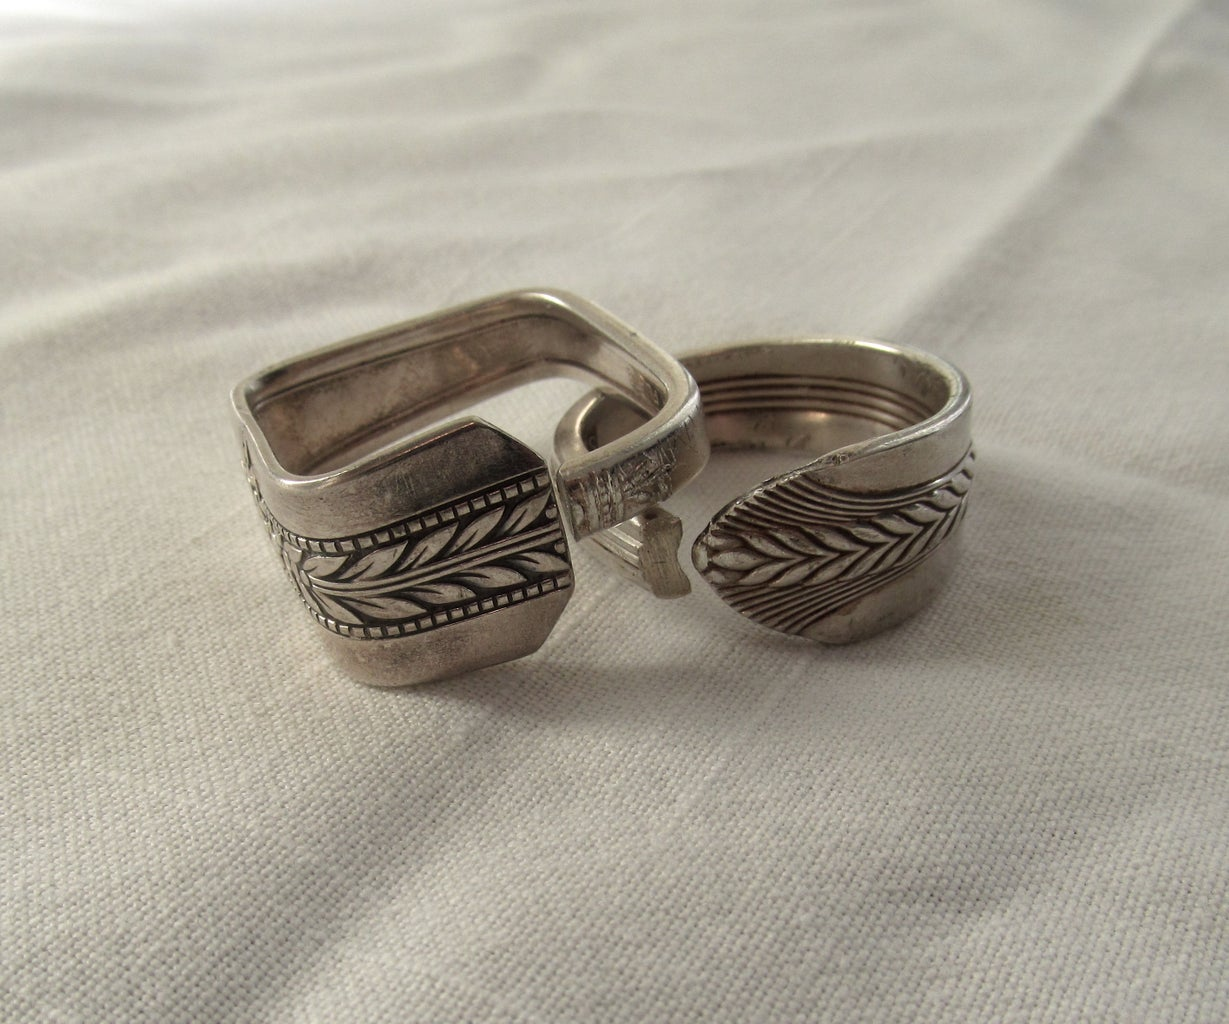 How to Make Napkin Rings From Silverware (Square or Round)